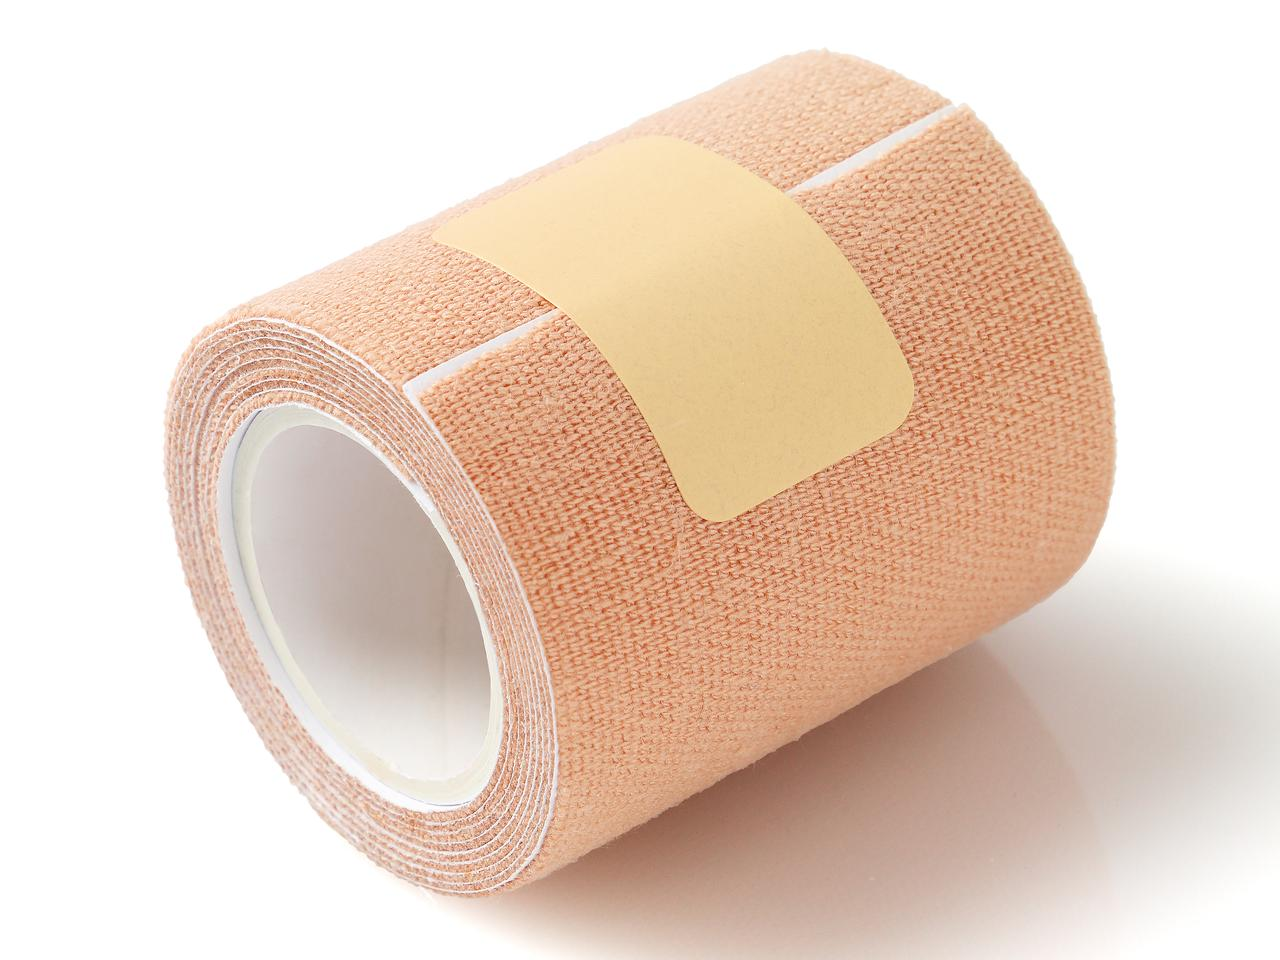 Roll of Elastic Therapeutic Tape on White Background